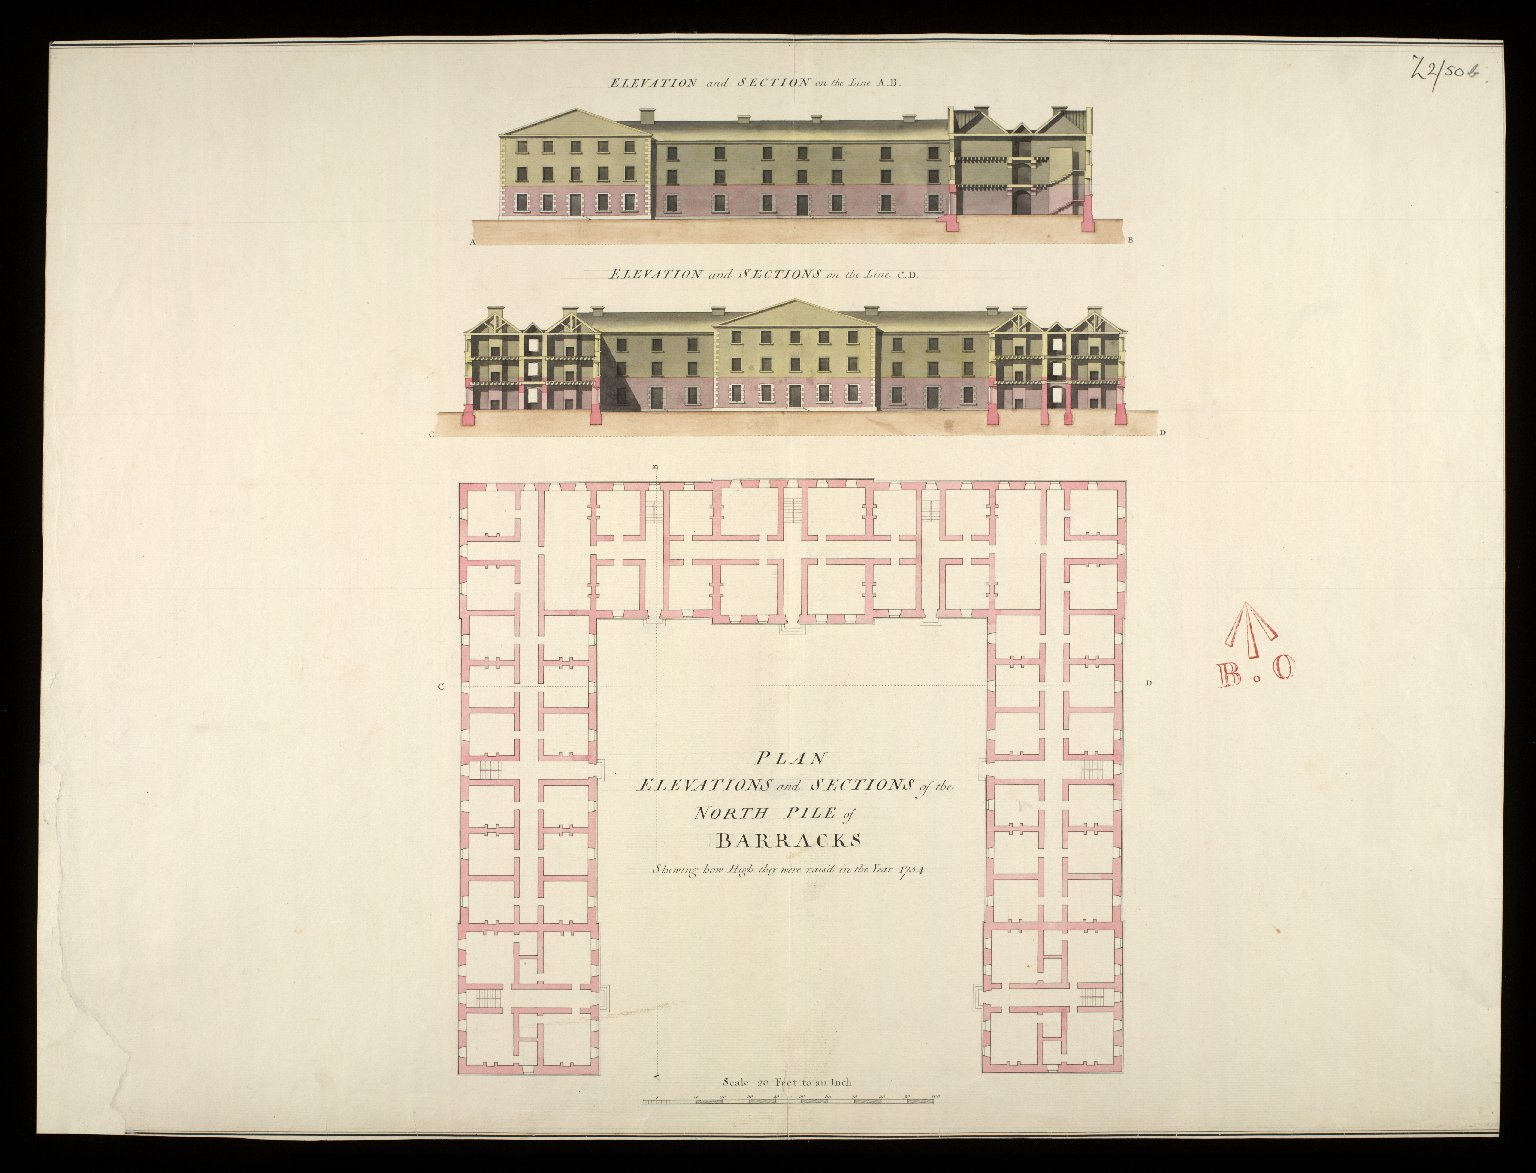 Plan, elevations with sections of the north pile of barracks : shewing how high they were rais'd in the year 1754 [1 of 1]